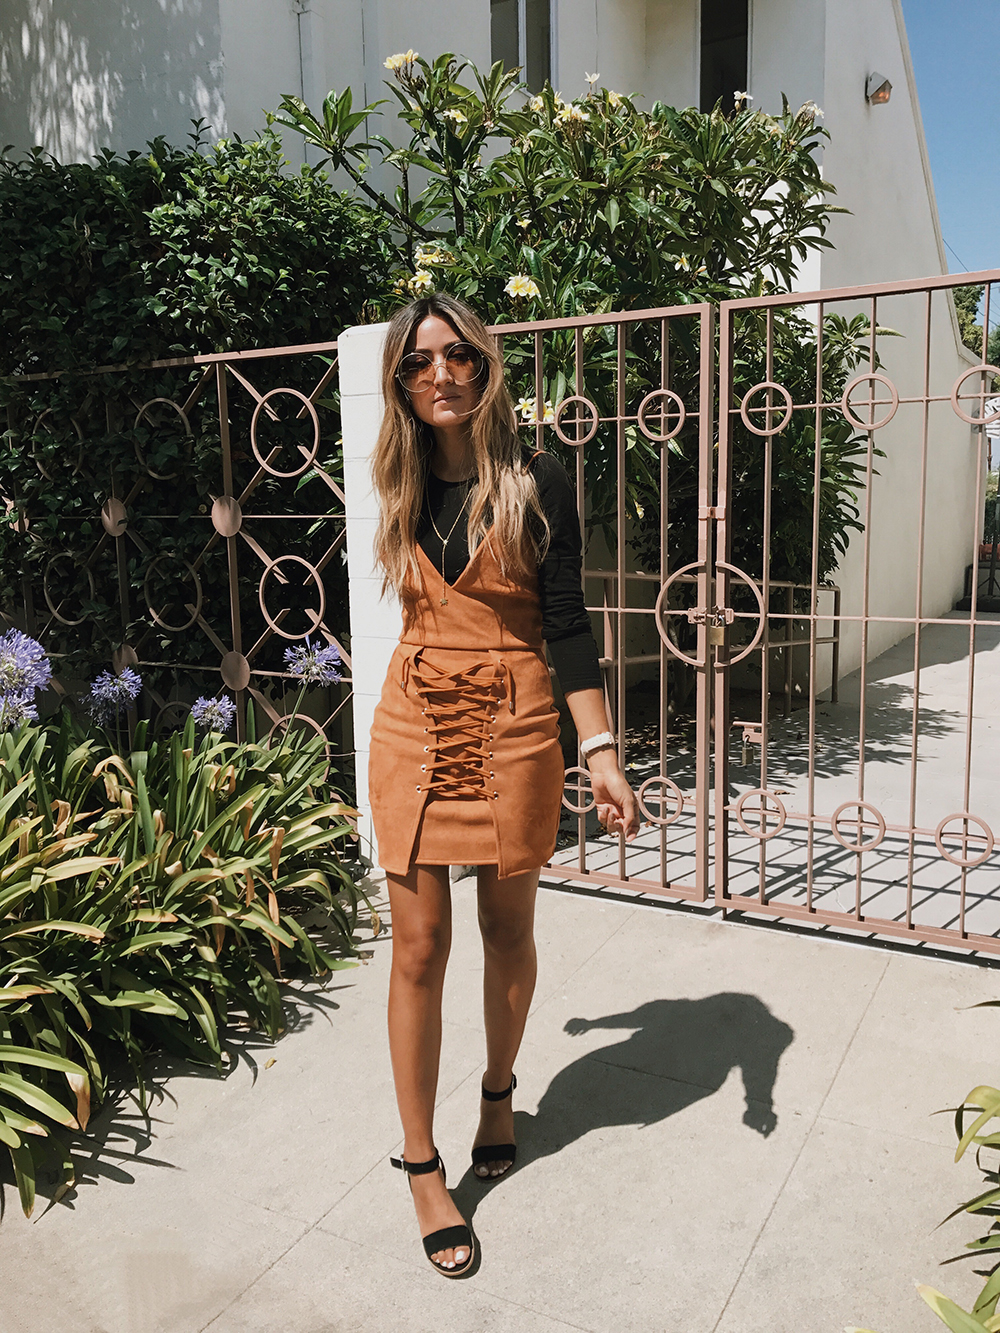 Swooning Over SABO SKIRT, SABO SKIRT, MELRODSTYLE, OOTD, FASHION, LA BLOGGER, SABO, OUTFITS, STREETSTYLE,